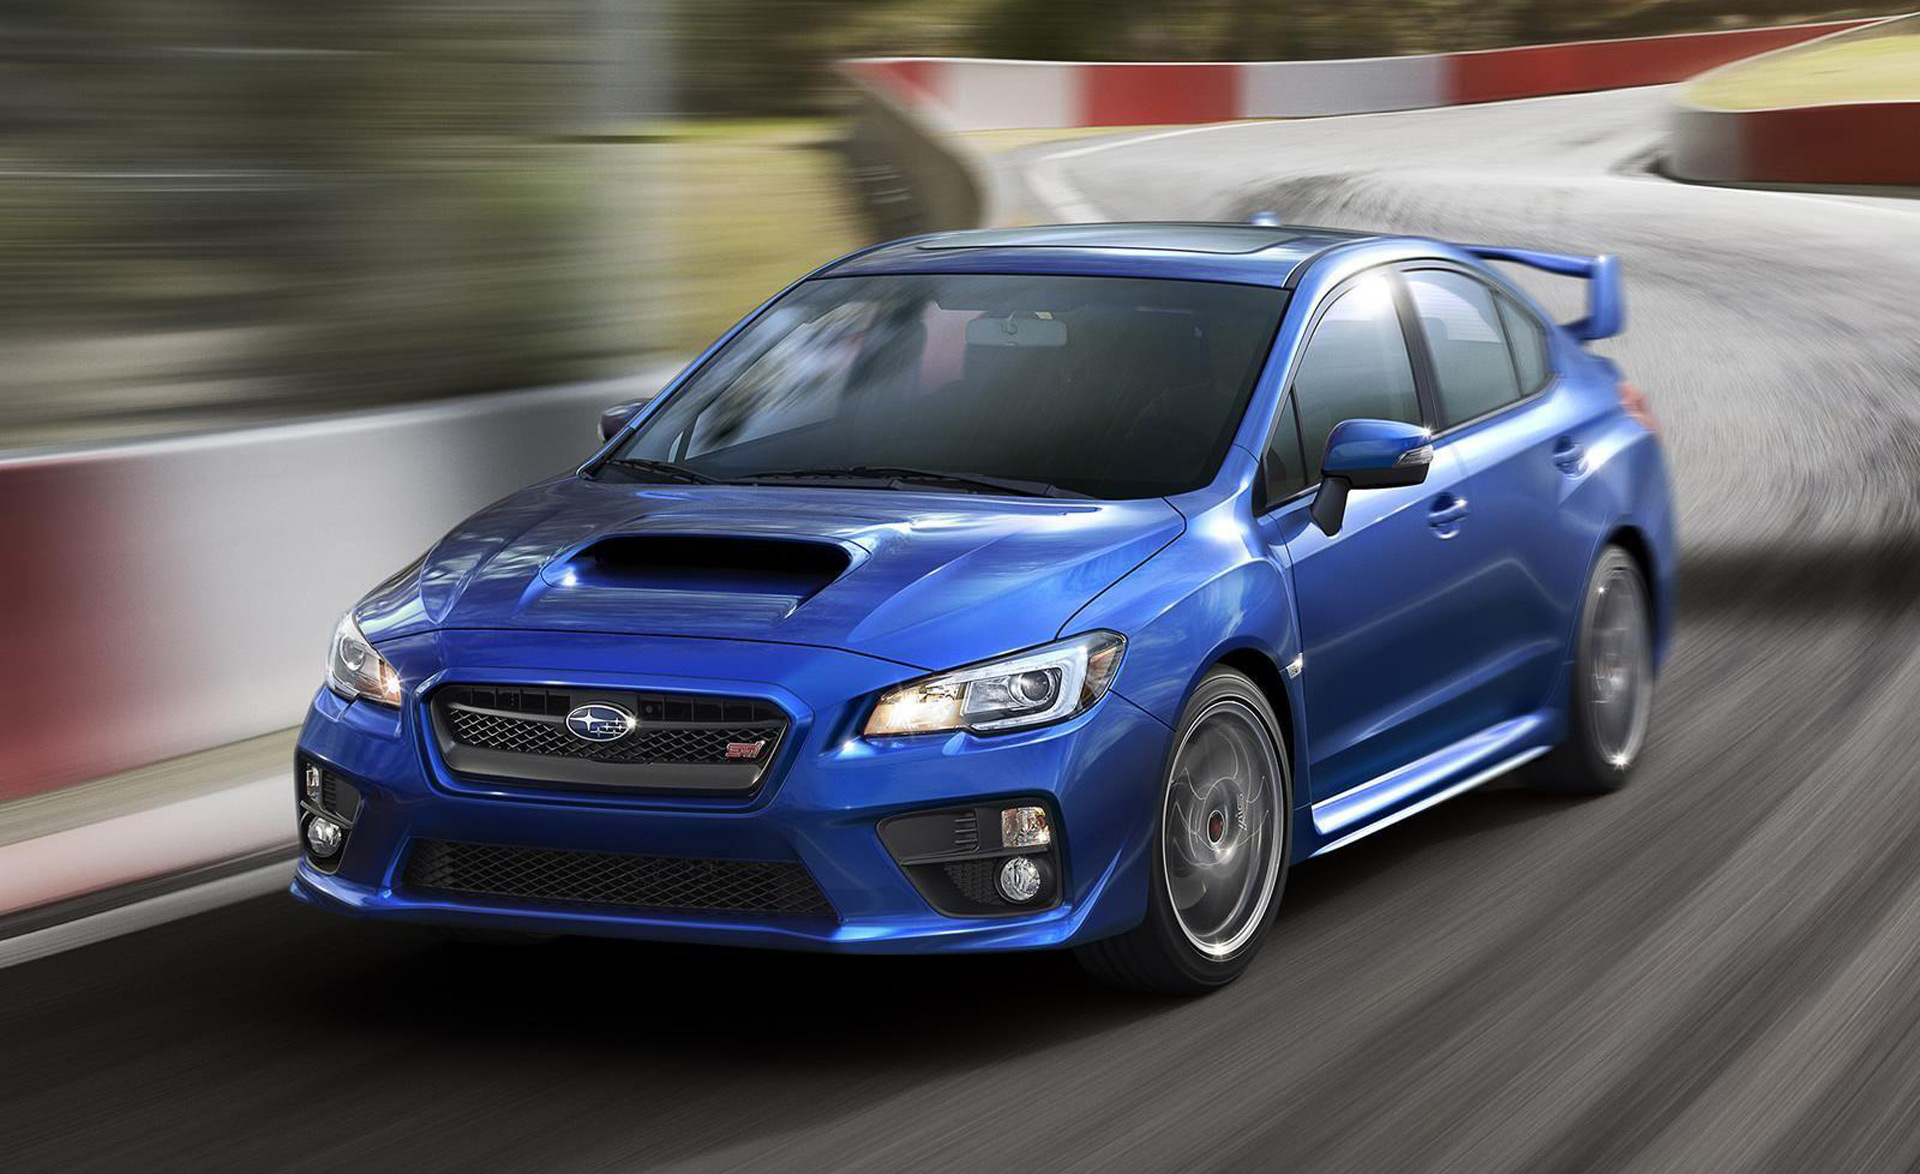 2017 subaru wrx and wrx sti preview. Black Bedroom Furniture Sets. Home Design Ideas